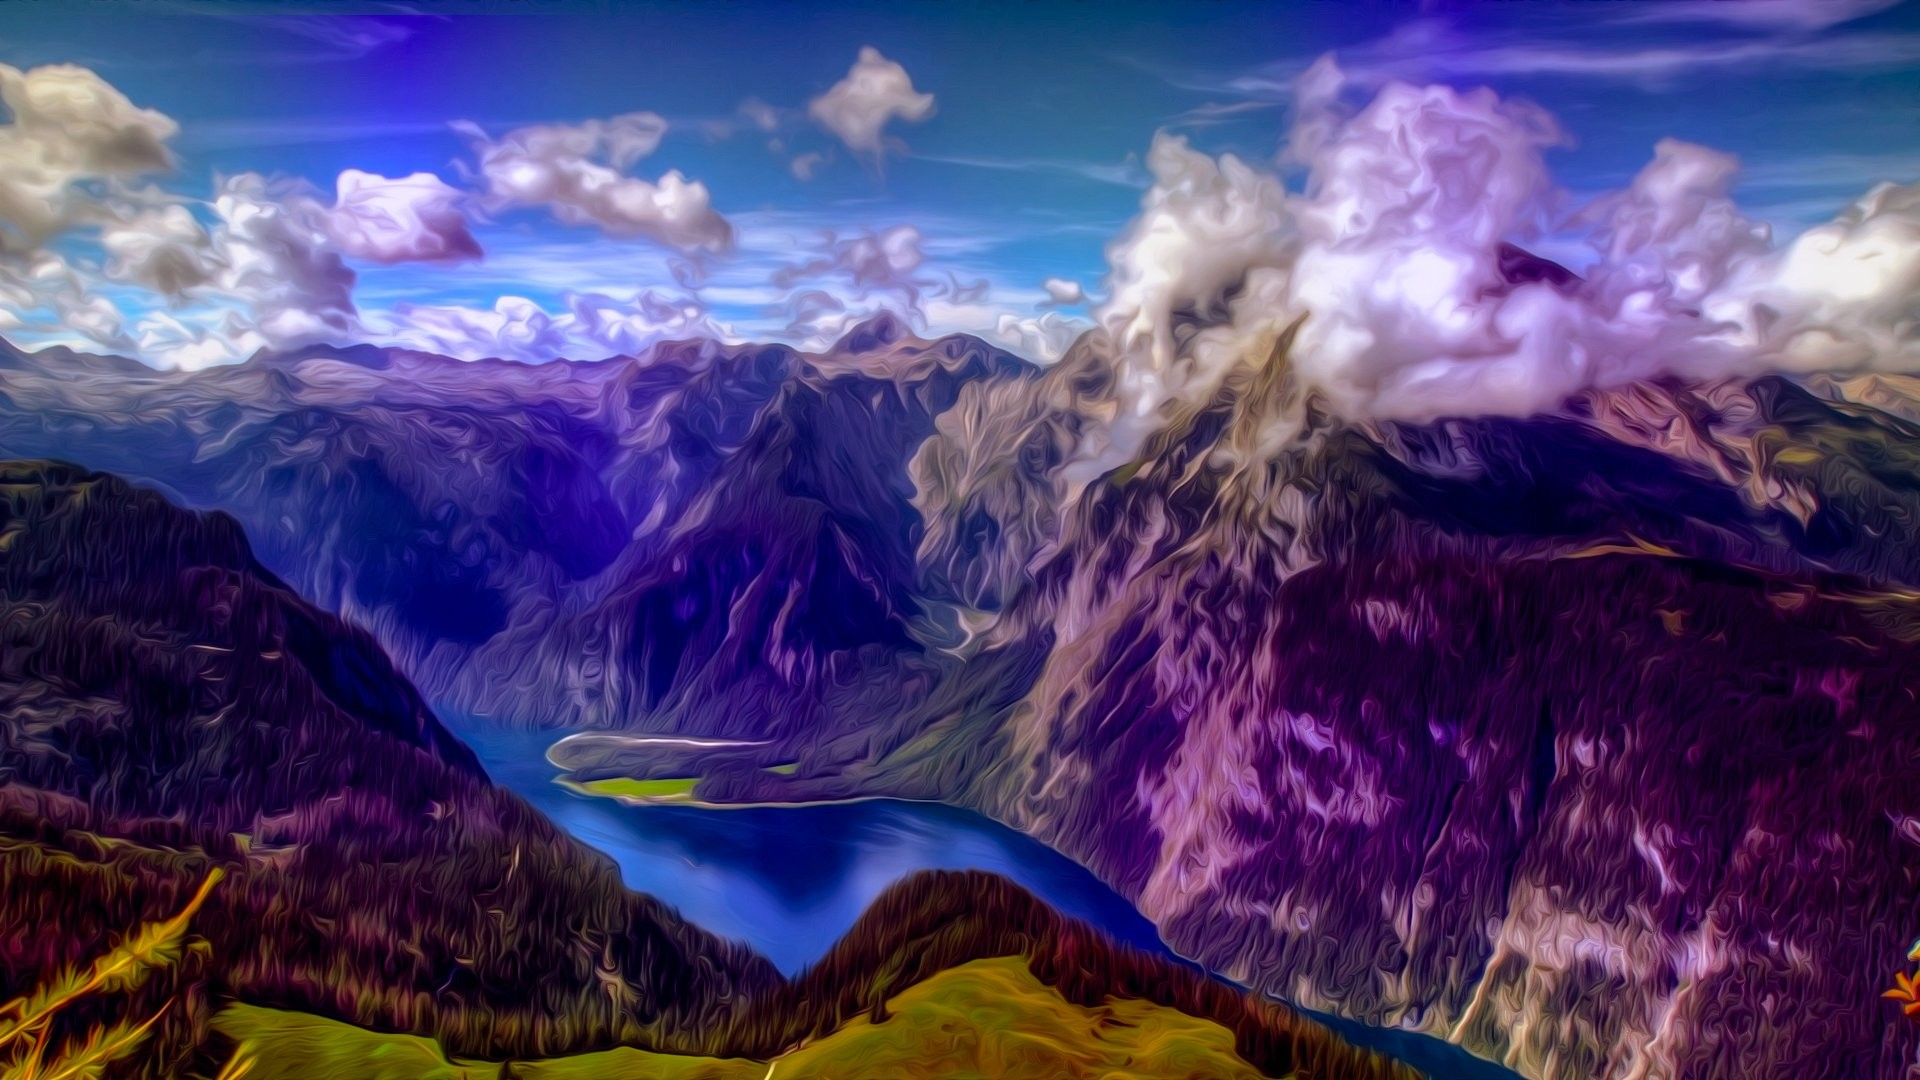 Res: 1920x1080, Mountains landscape nature mountain psychedelic wallpaper |  |  652982 | WallpaperUP